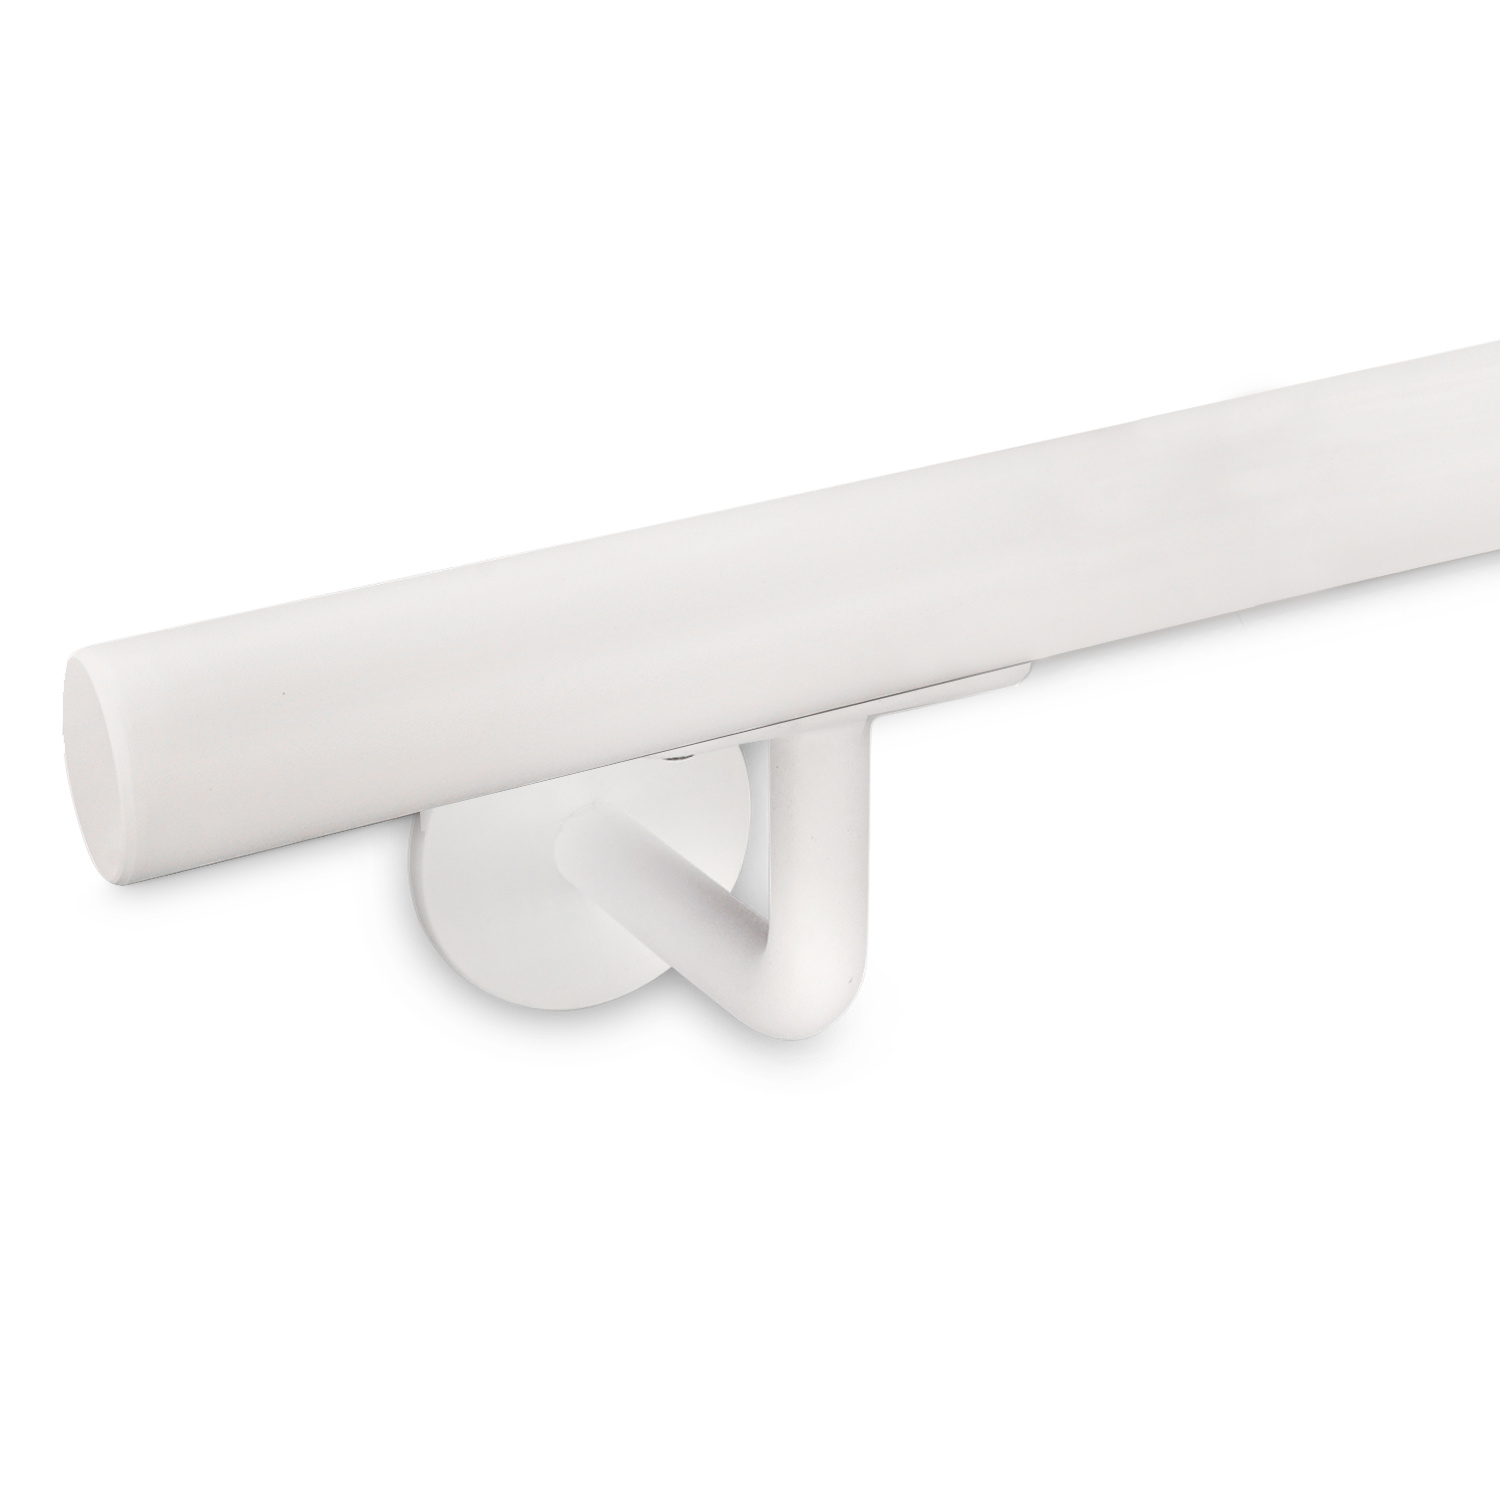 Witte trapleuning gecoat rond smal incl. dragers TYPE 3 -fijnstructuur poedercoating RAL 9010 mat wit